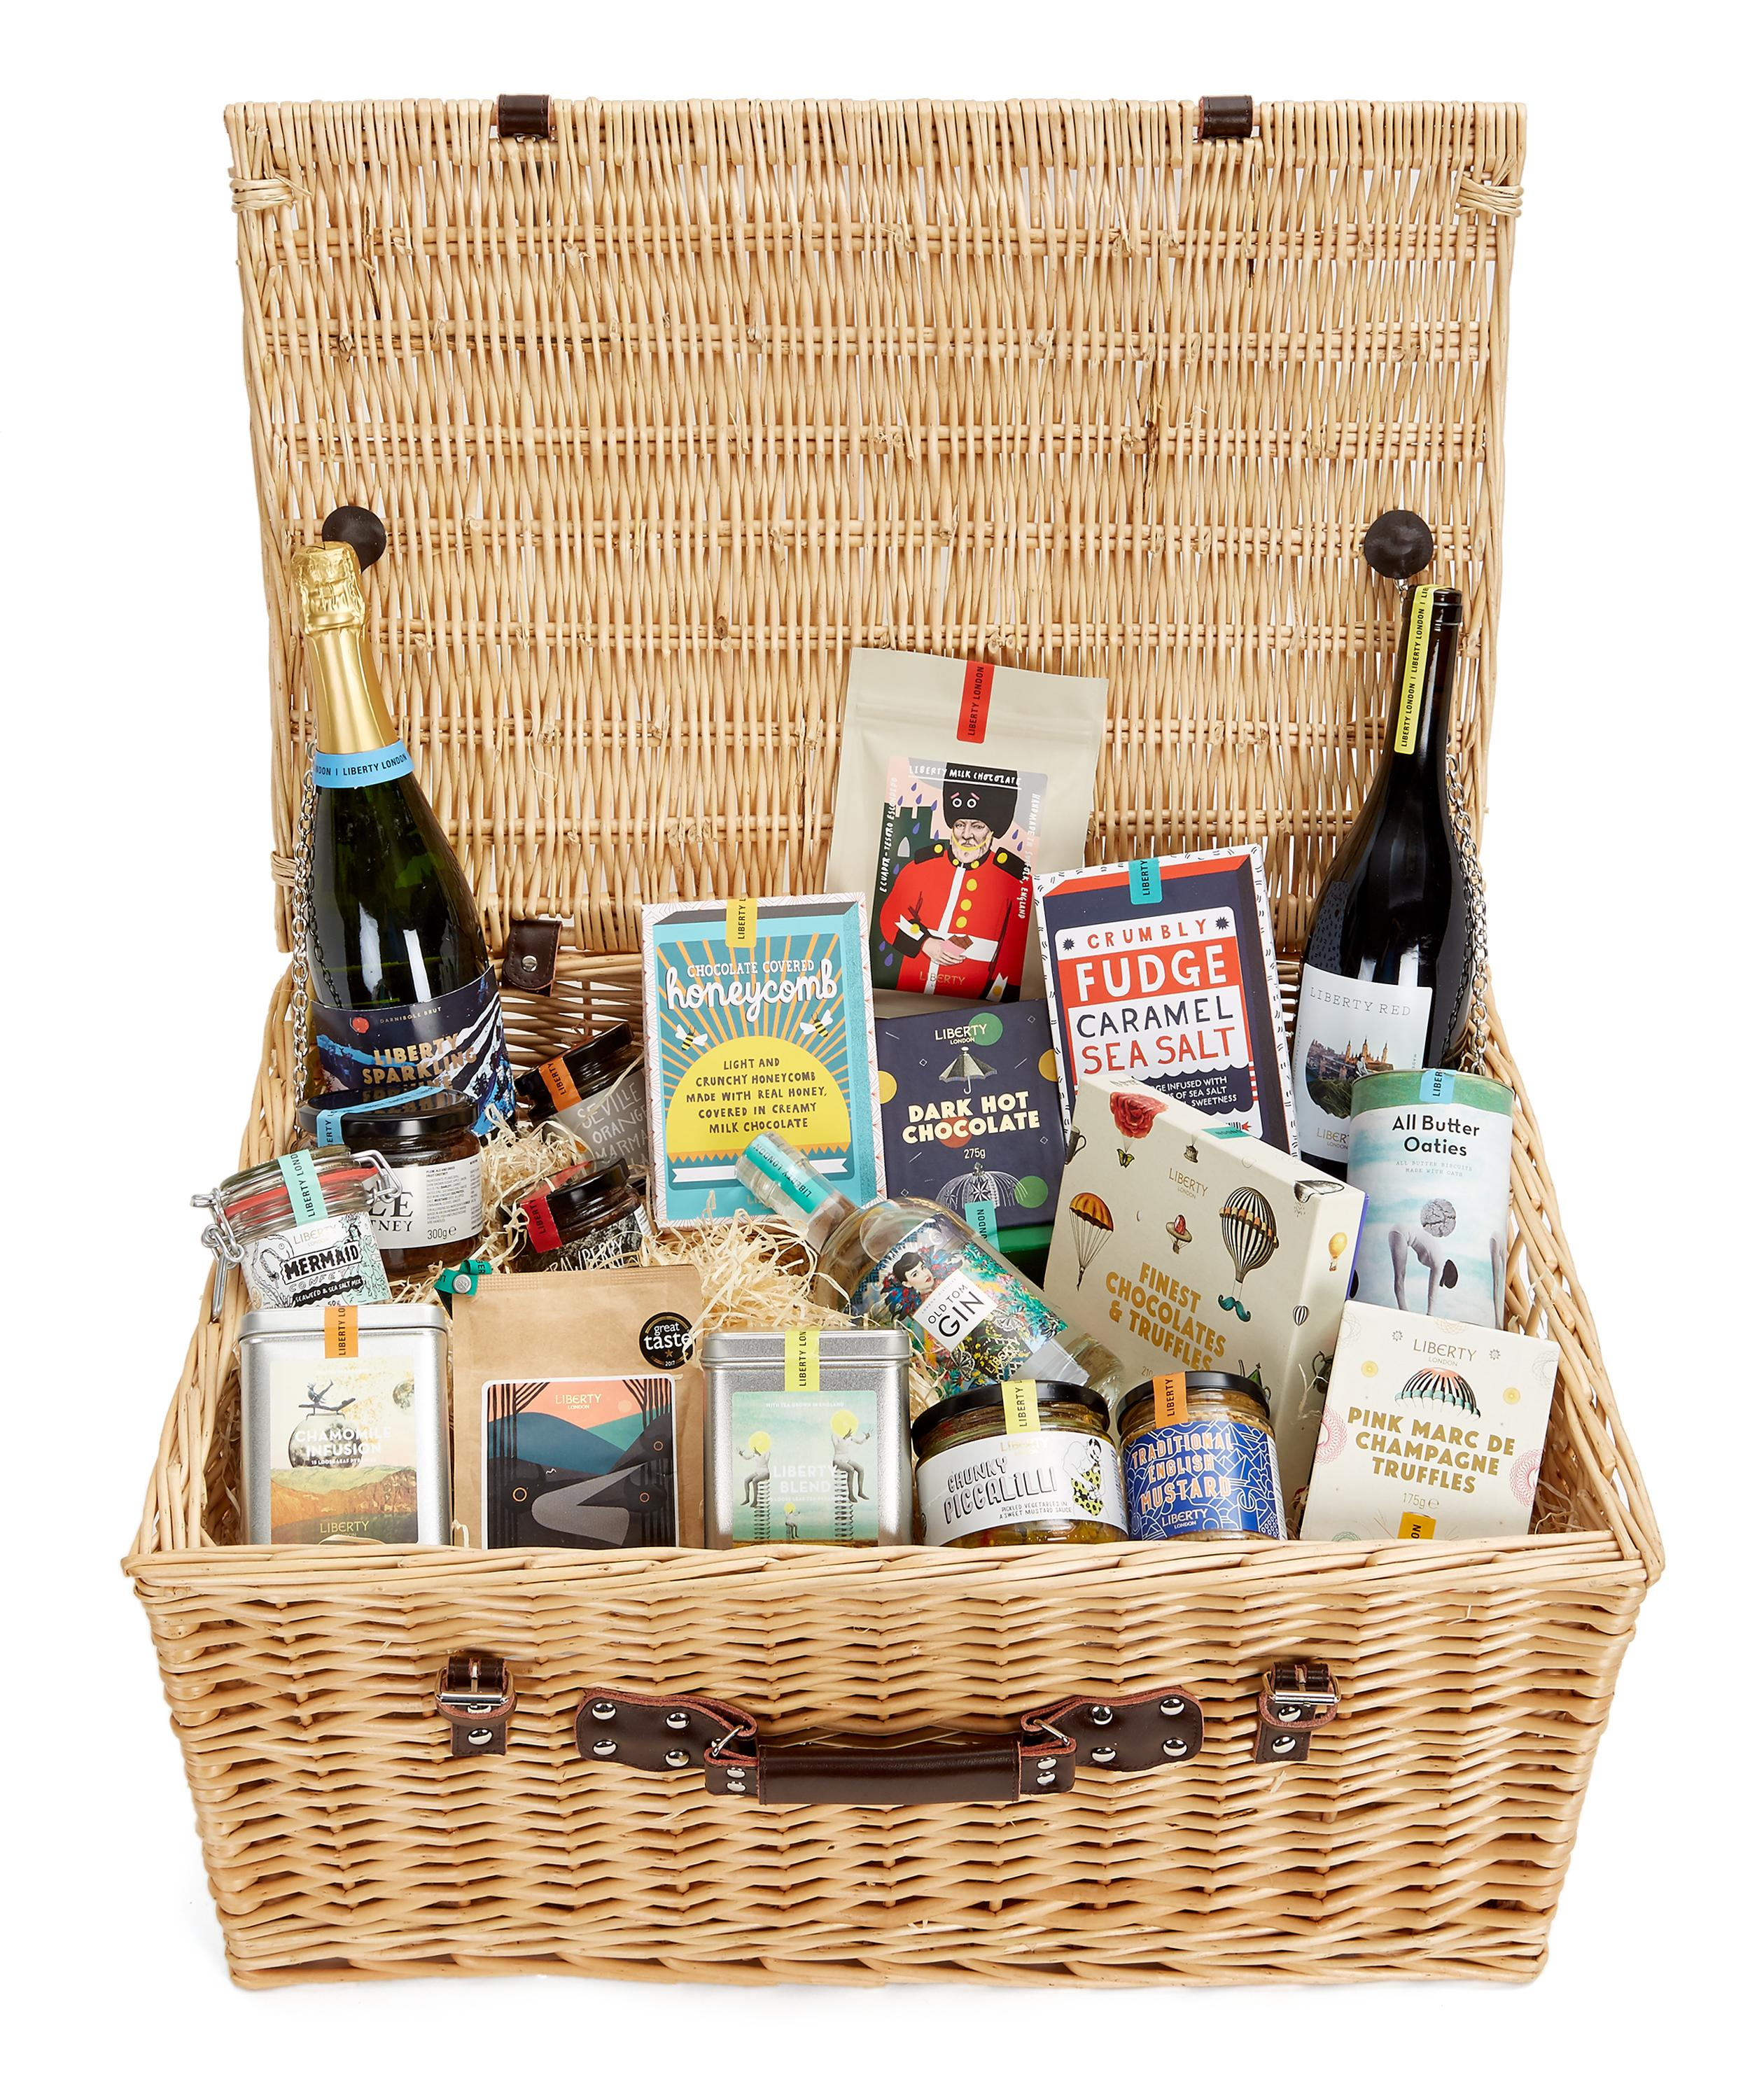 LIBERTY LONDON Wicker Gift Basket – Online Exclusive